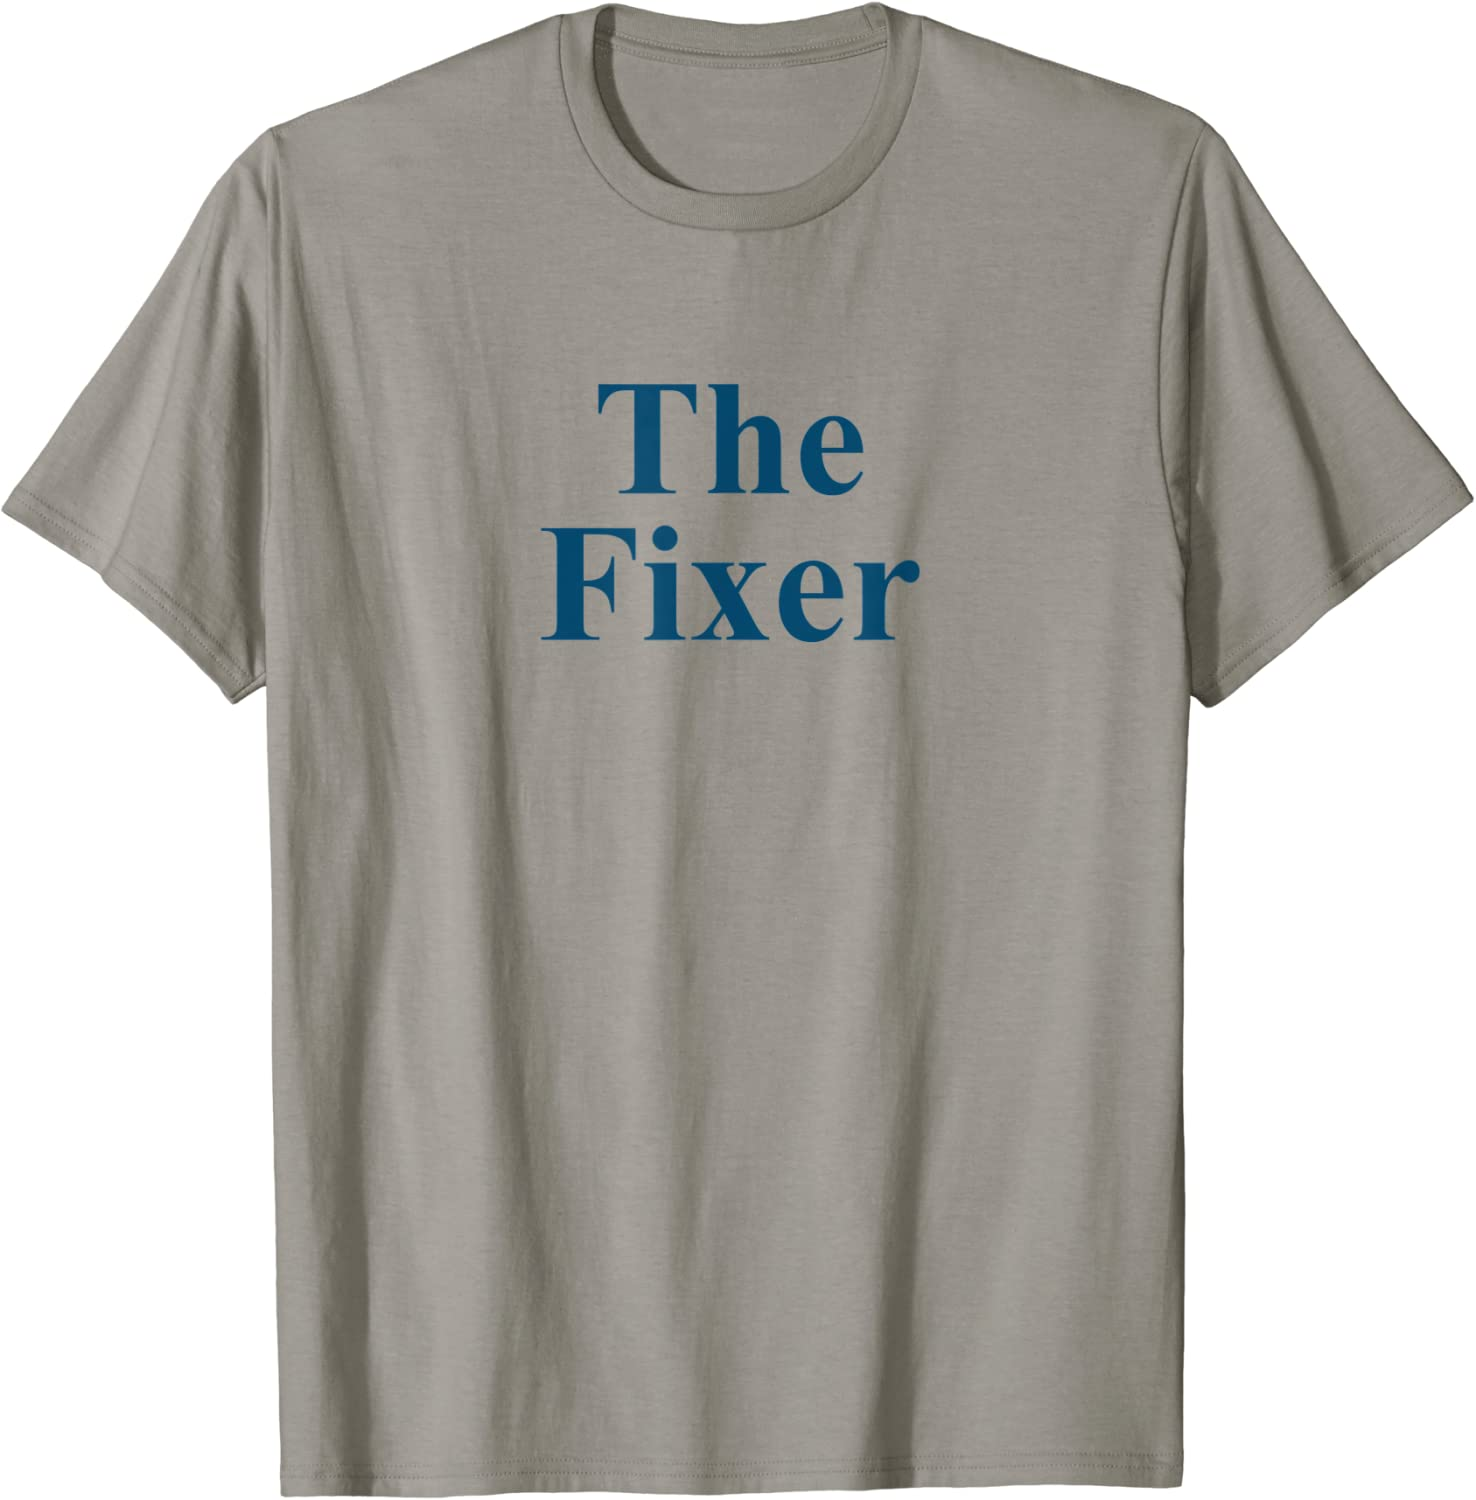 The Fixer Gear Father Day Shirts Uncle Gift for Handyman T-Shirt